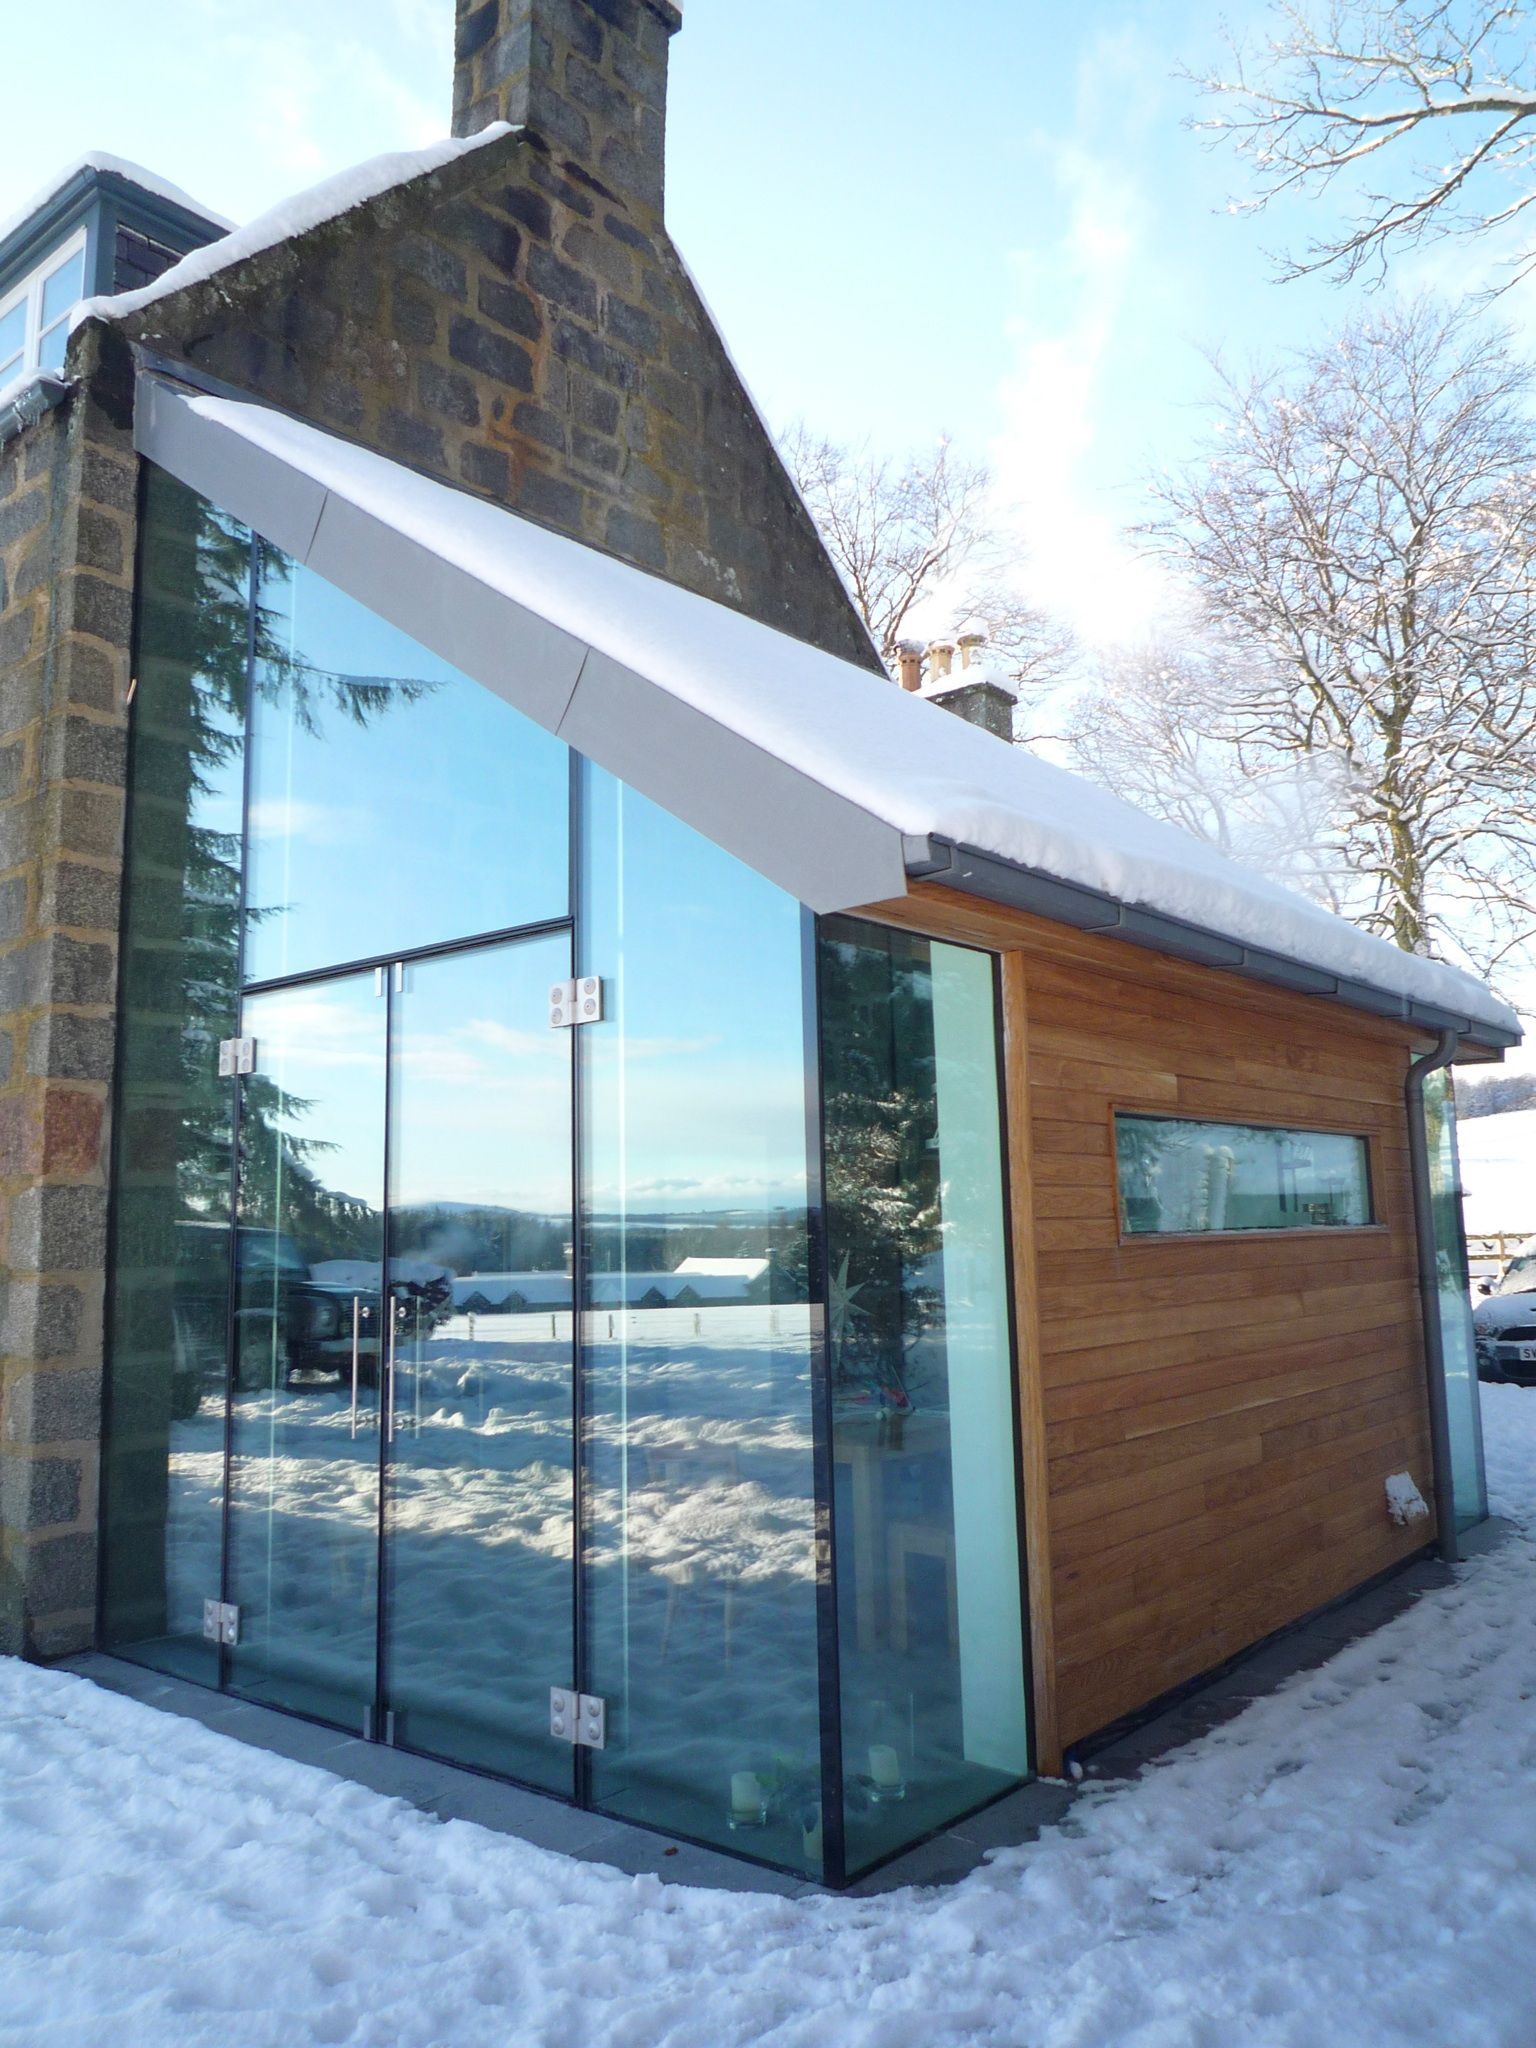 Prospect House Structural Glass Extension Structural Glazing Vmzinc Roof Oak Cladding Frame With Images Glass Extension Architecture Building Design Prospect House